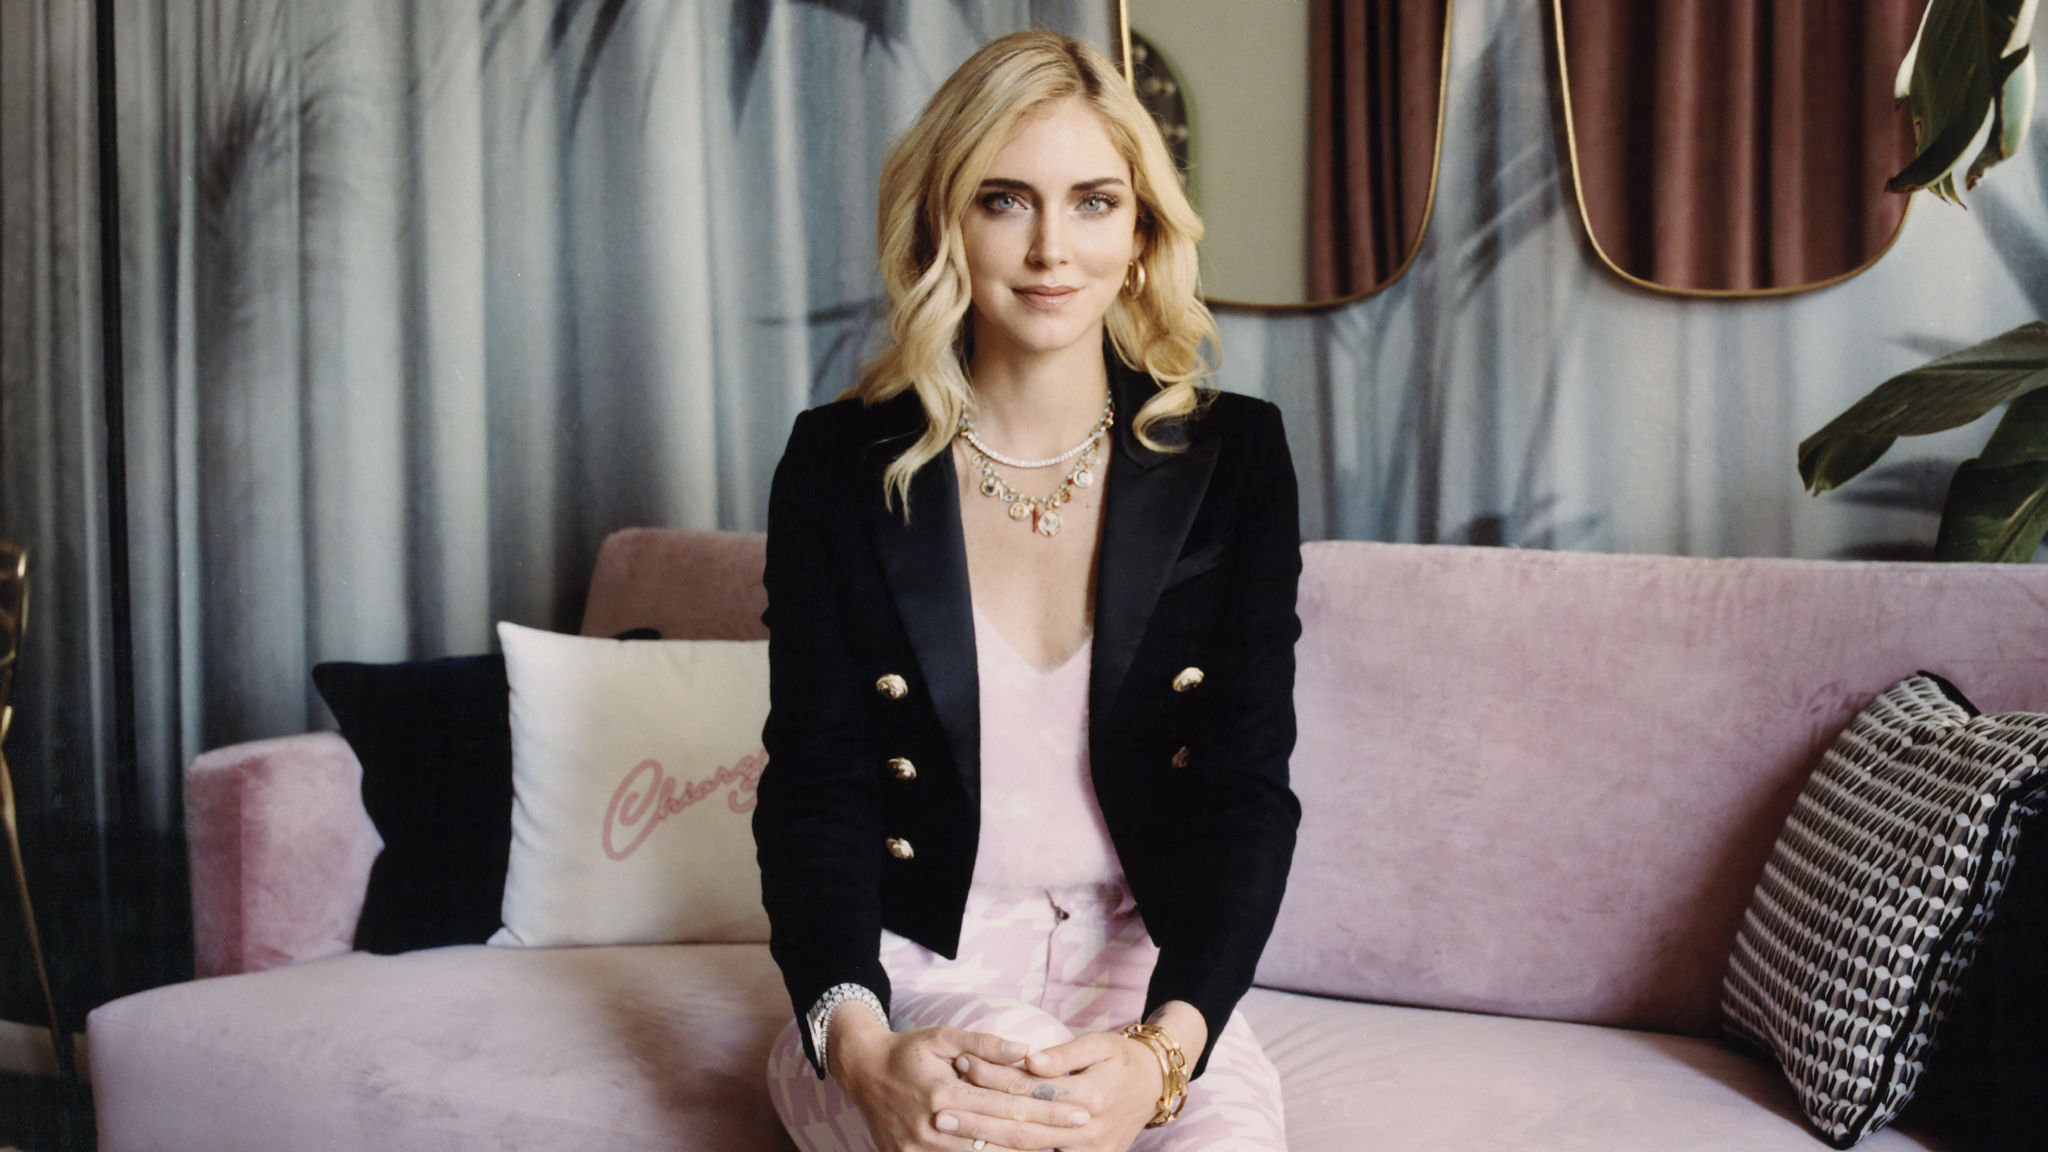 Chiara Ferragni The Italian Influencer Who Built A Global Brand Financial Times